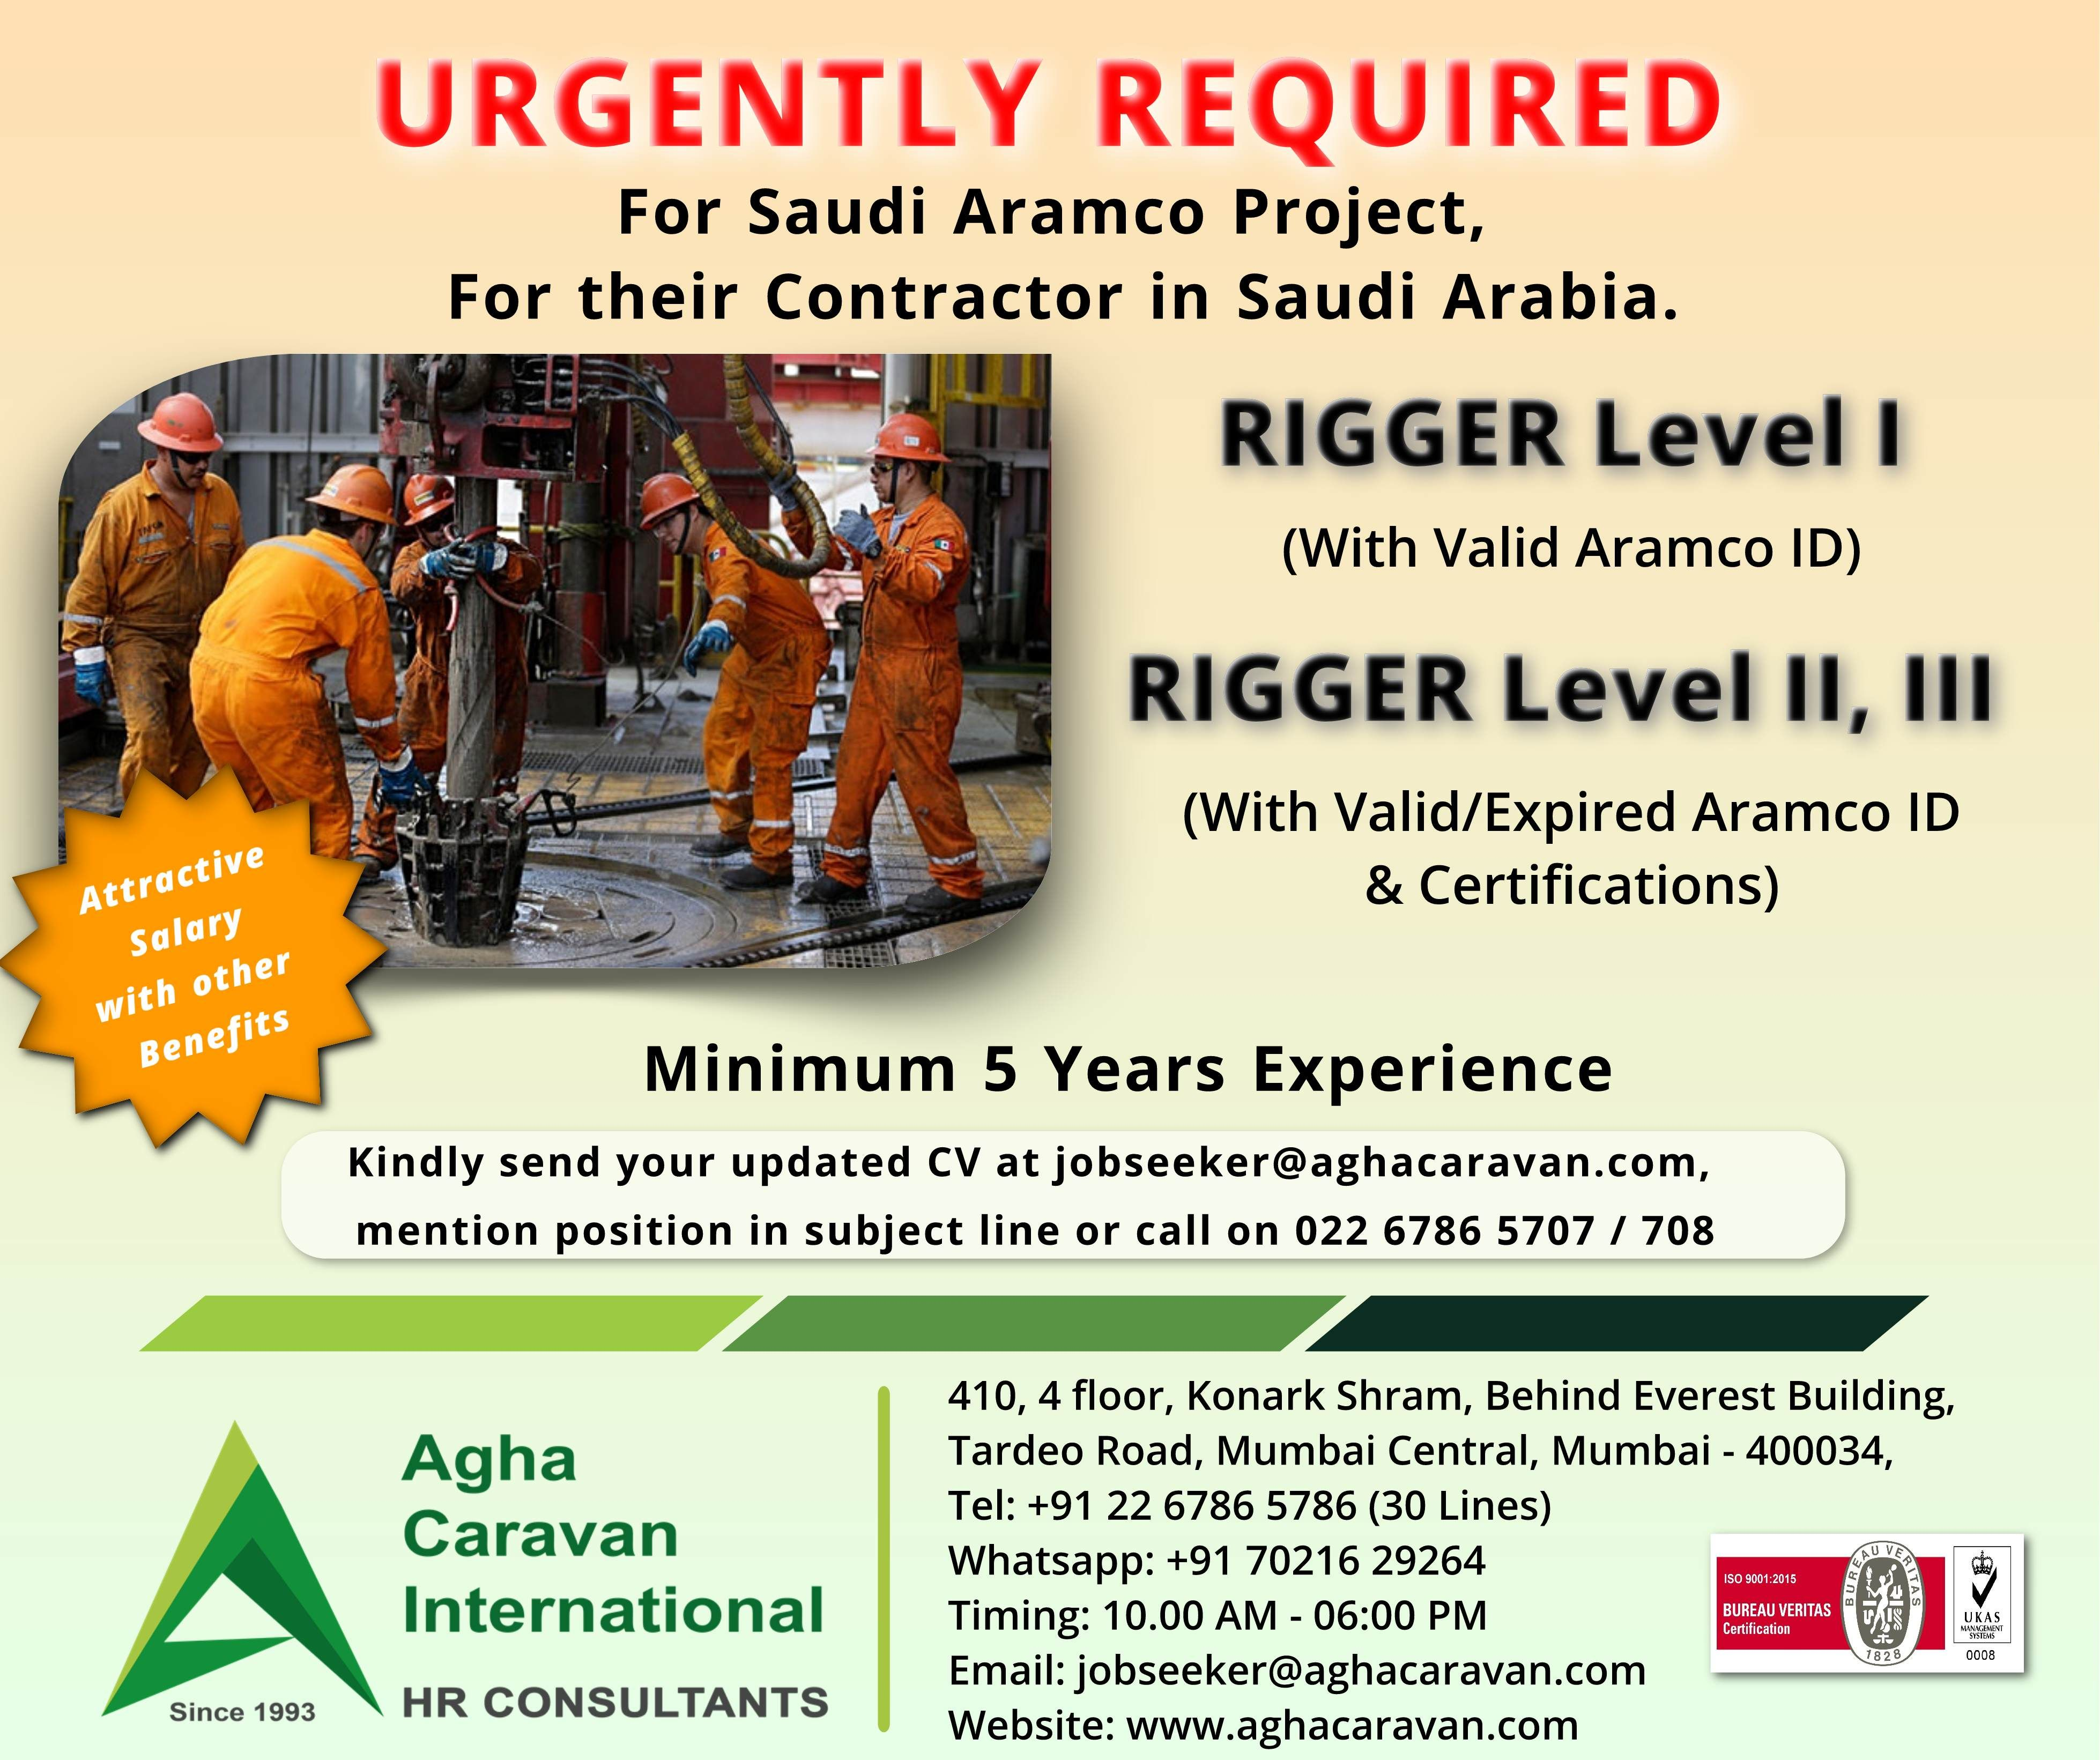 Urgently required #Rigger for Saudi #Aramco project for their